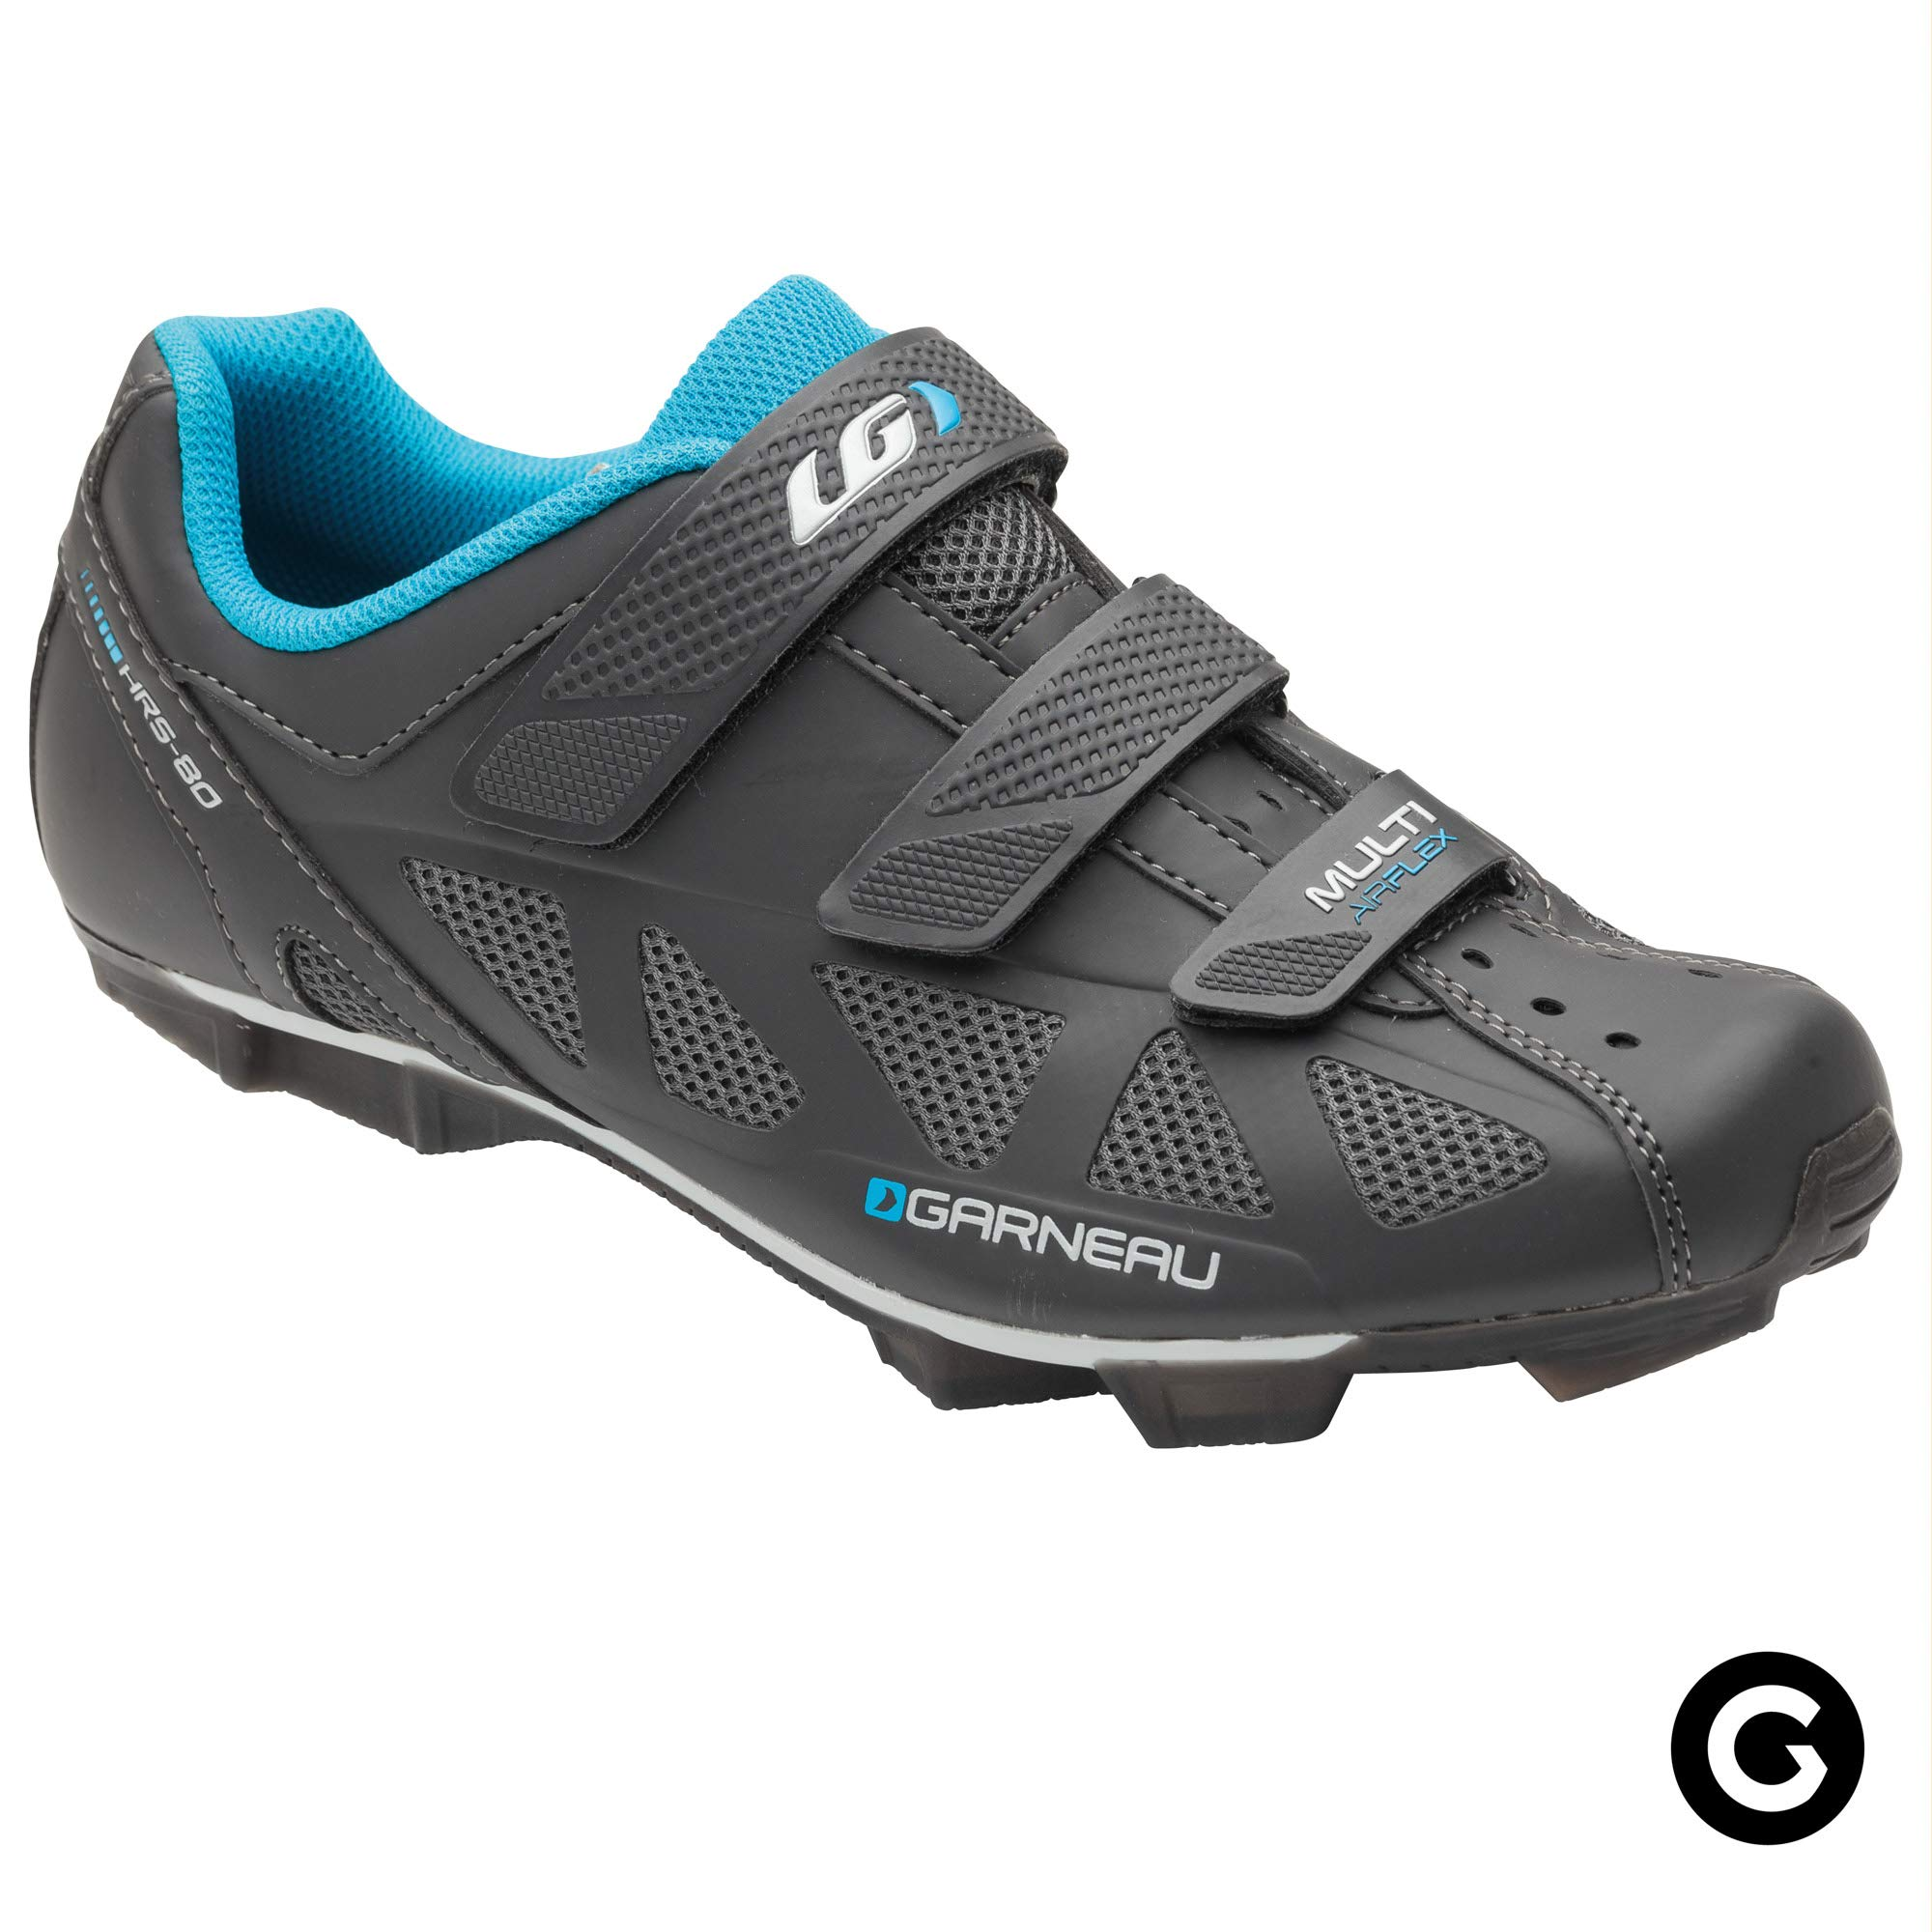 Louis Garneau - Men's Multi Air Flex Bike Shoes for Commuting, MTB and Indoor Cycling, SPD Cleats Compatible with MTB Pedals, Asphalt, US (10), EU (44)